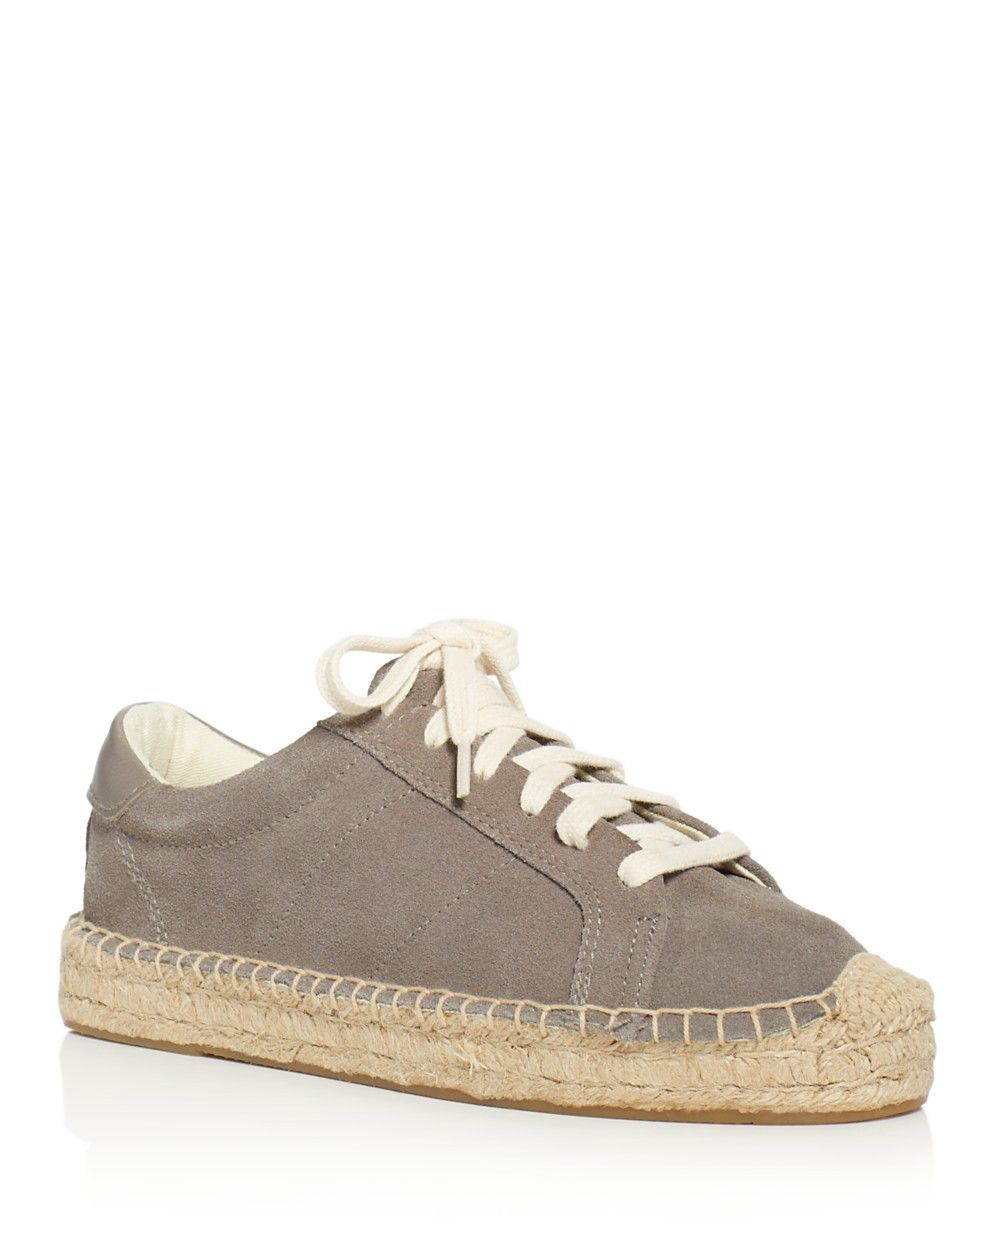 Soludos Tennis Platform Espadrille Lace Up Sneakers Dove Gray Women